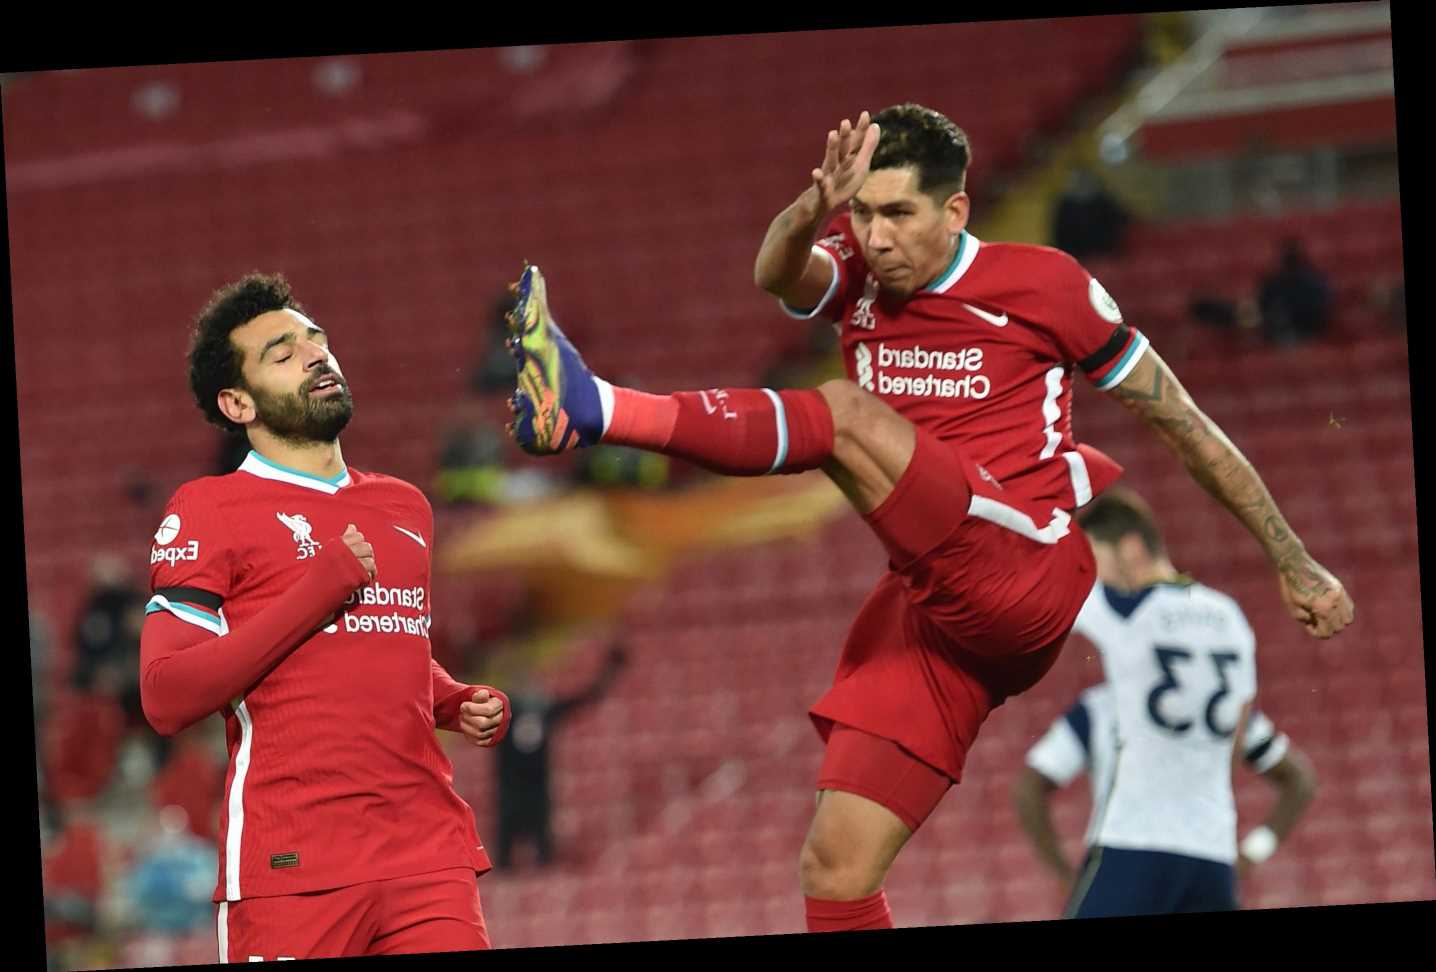 Liverpool vs West Brom: Live stream, TV channel, kick-off time and team news for Premier League clash at Anfield